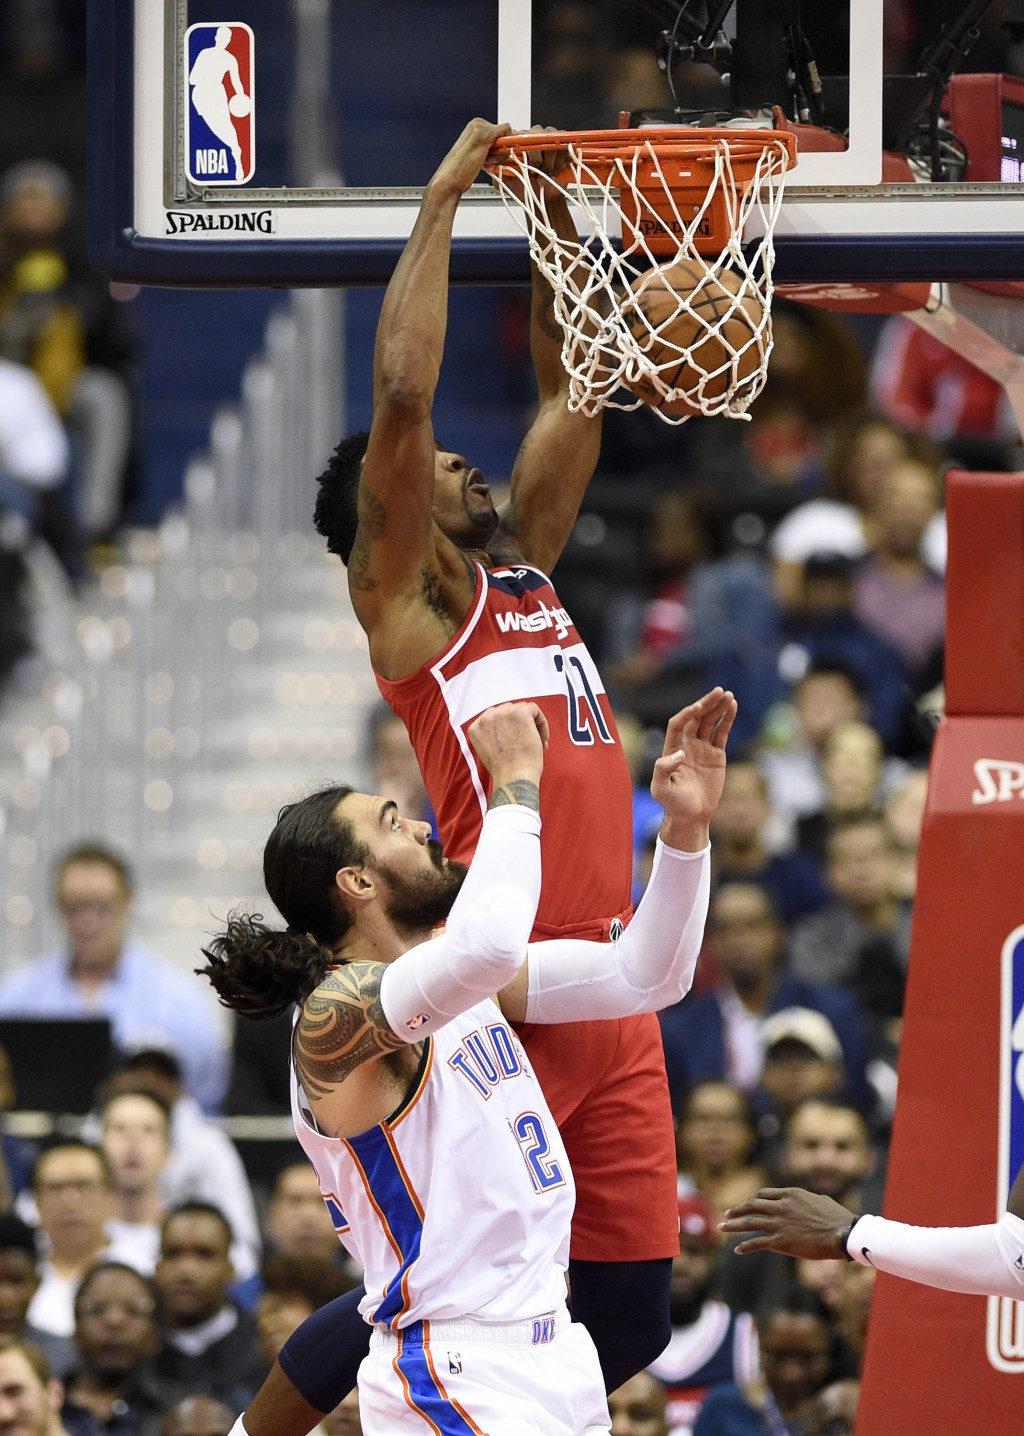 Washington Wizards center Dwight Howard (21) dunks over Oklahoma City Thunder center Steven Adams (12), of New Zealand, during the first half of an NB...